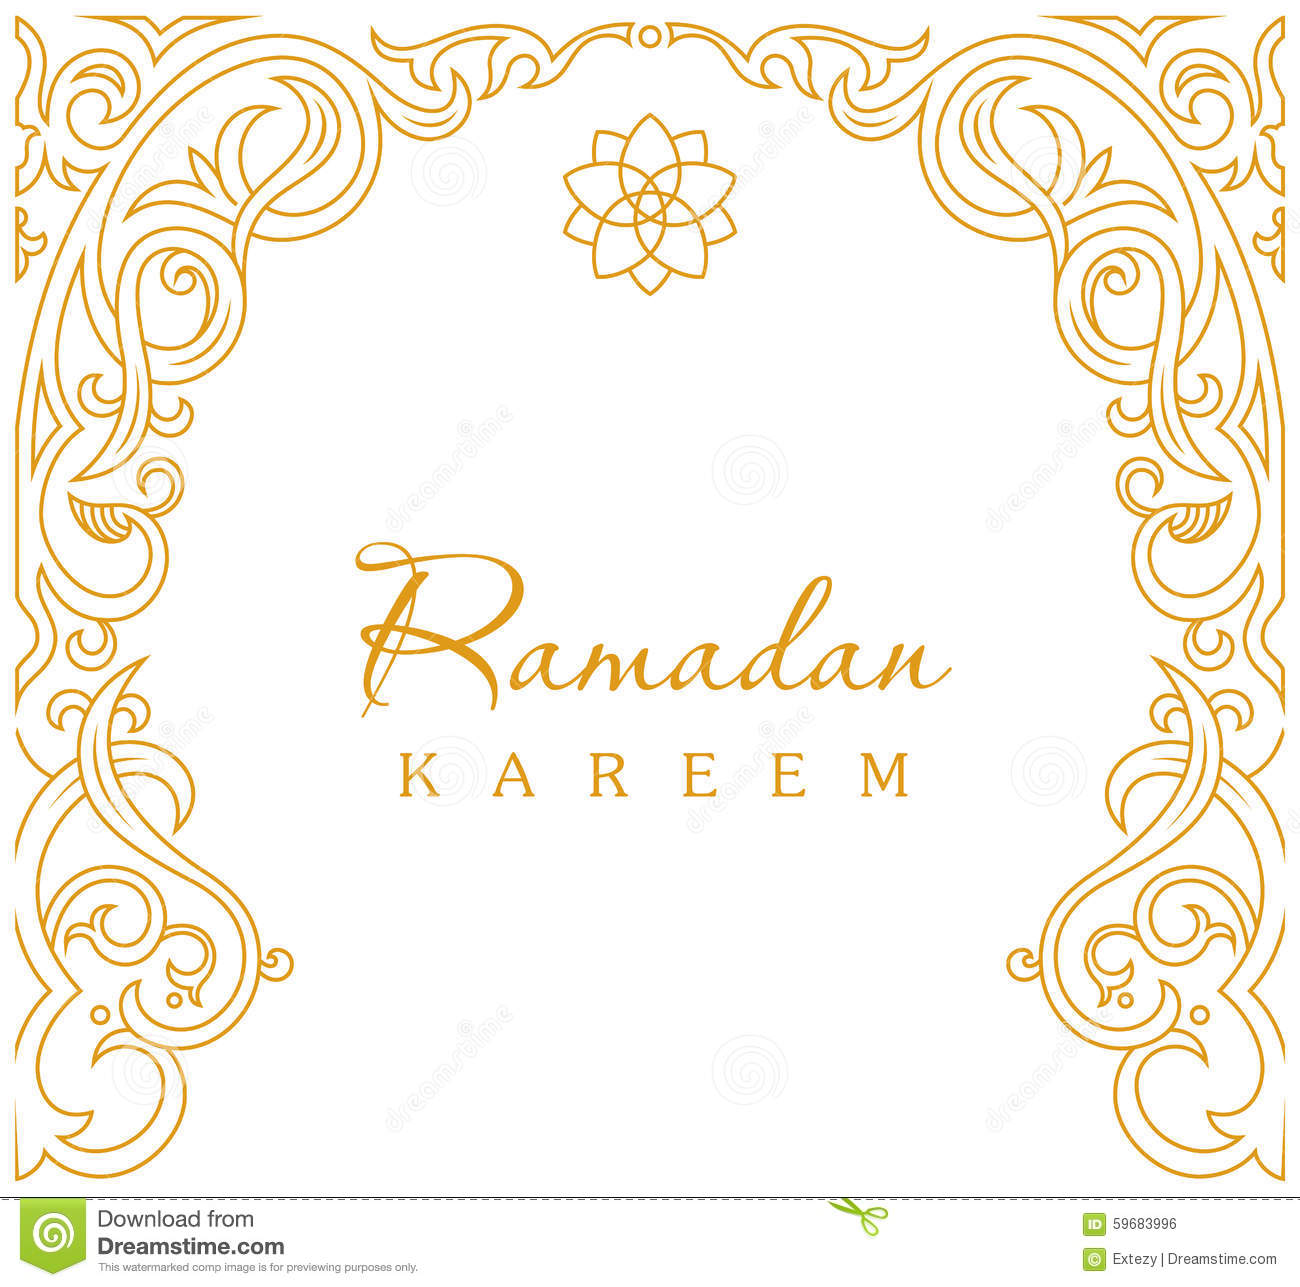 Ramadan Kareem, Greeting Vector Background. Arch Stock Vector ... for Ramadan Pattern Png  535wja